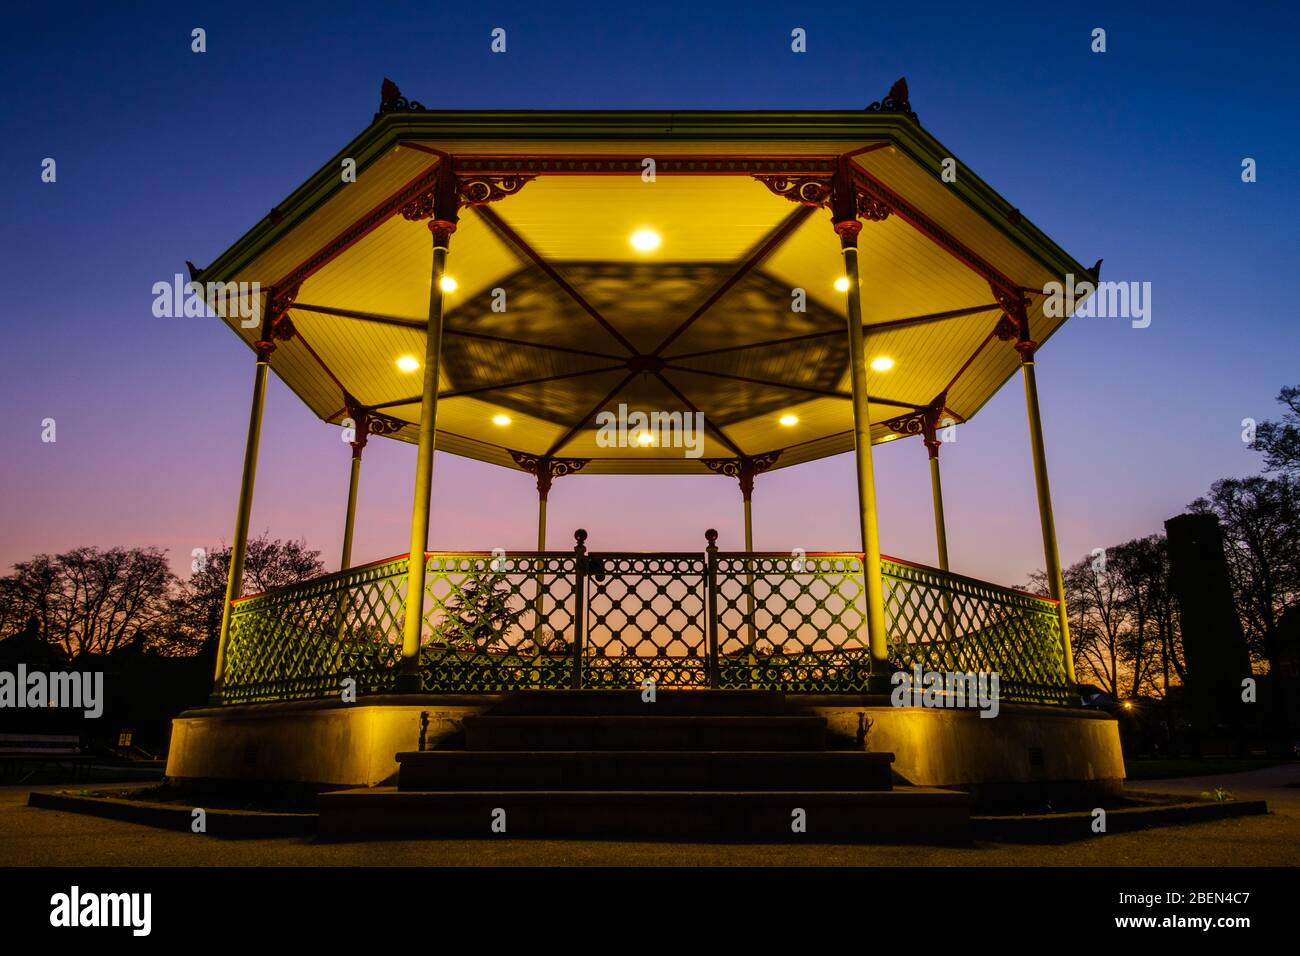 Victorian Bandstand in the Royal Pump Rooms Gardens, Royal Leamington Spa, one month after its 2019 refurbishment, completed in March 2020. Stock Photo